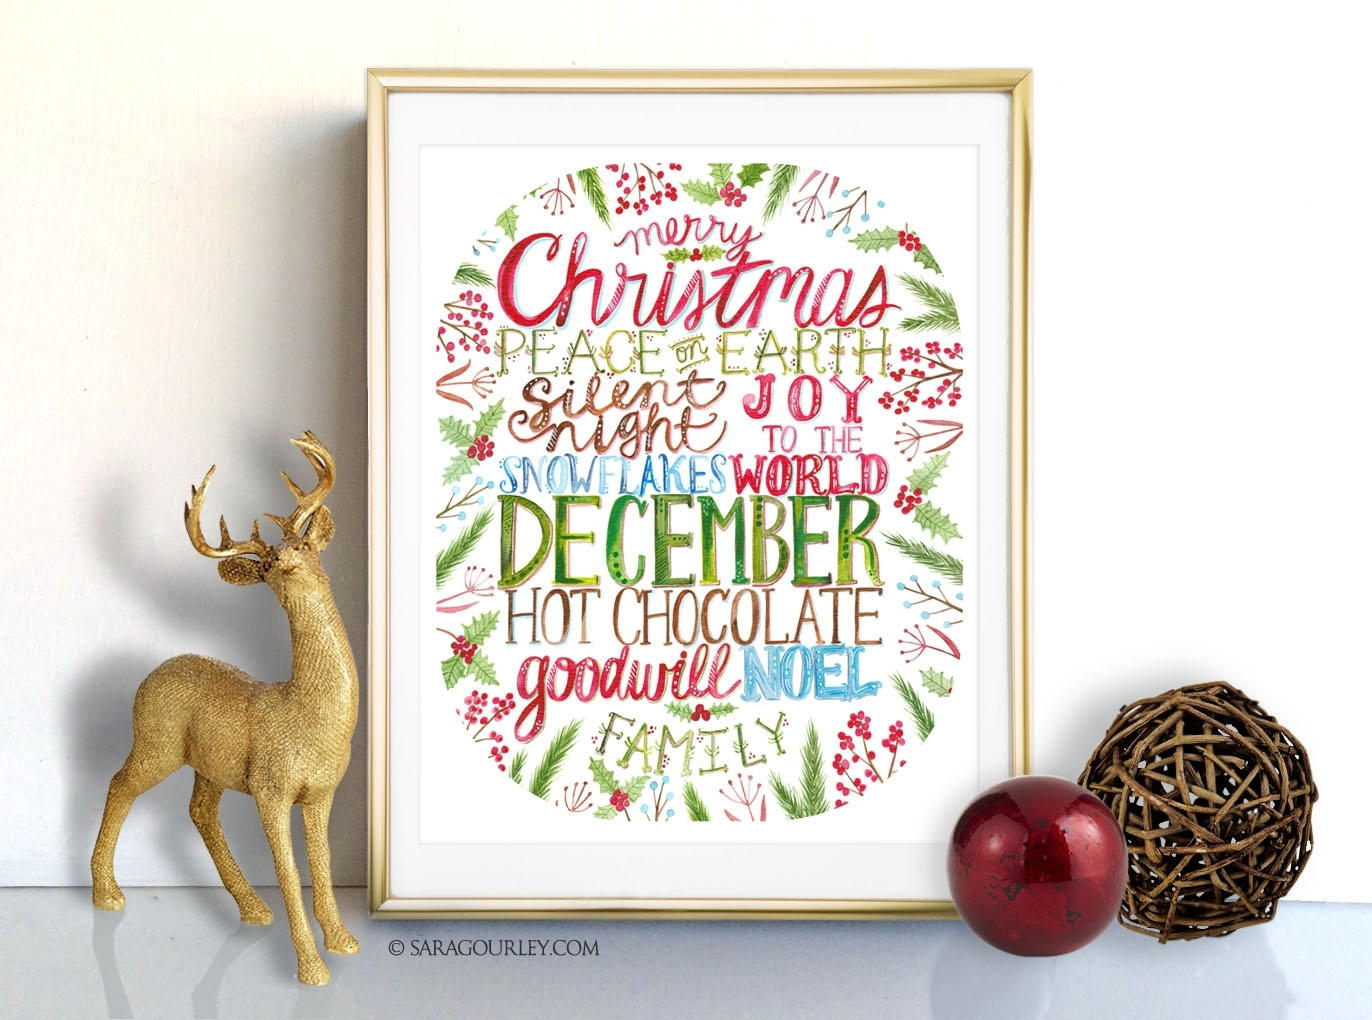 Sara Gourley | Fine Art & Digital Designs Pertaining To Most Popular Christmas Framed Art Prints (View 15 of 15)